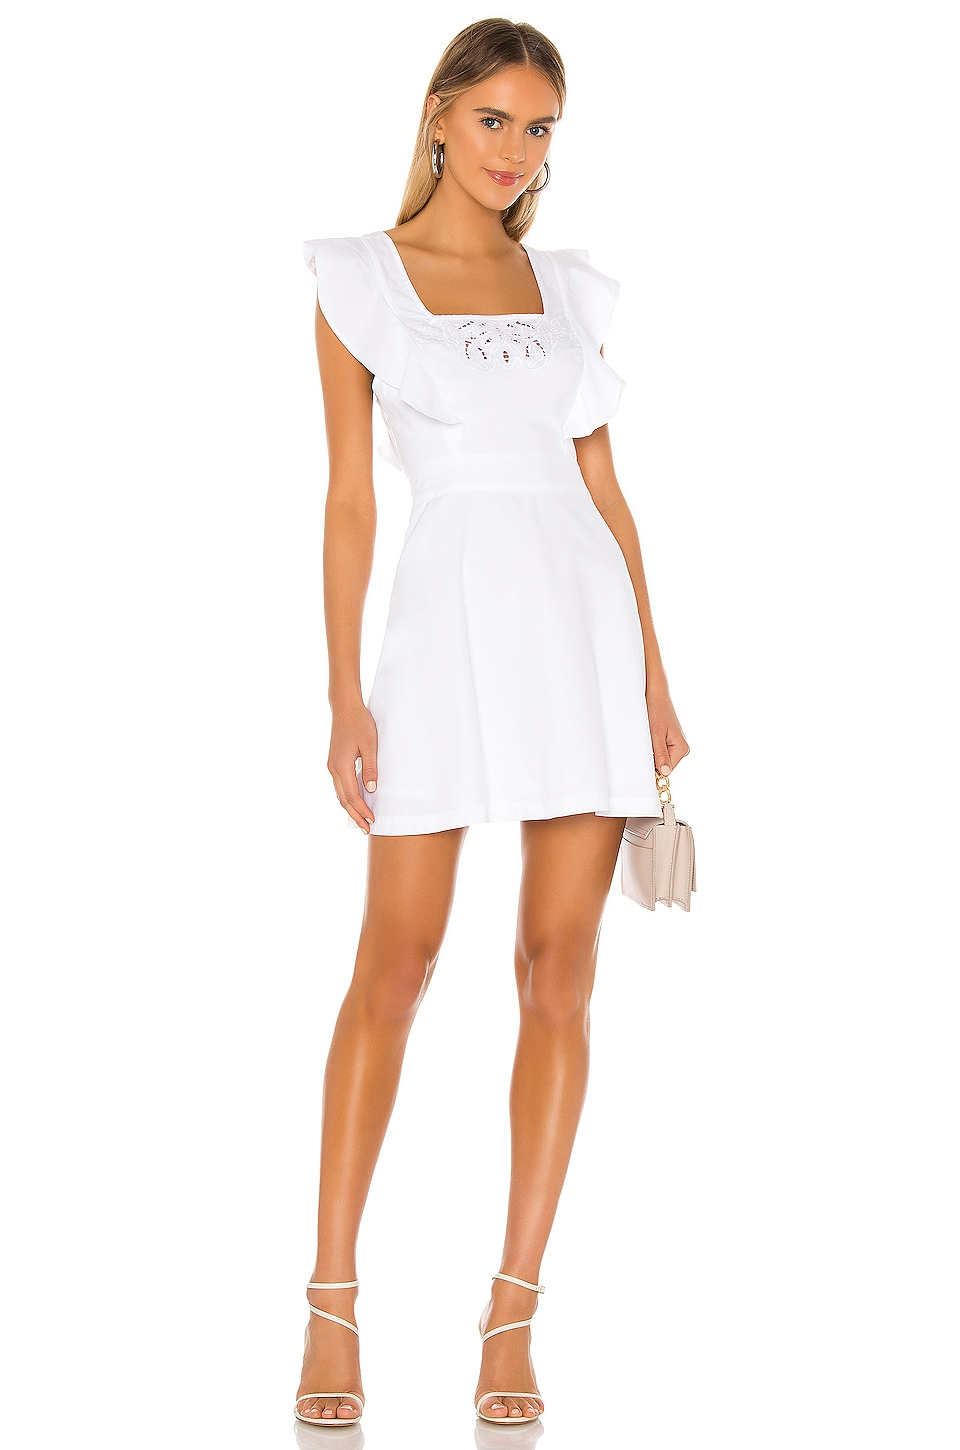 Tie Back Dress             BCBGeneration                                                                                                       CA$ 165.70 12